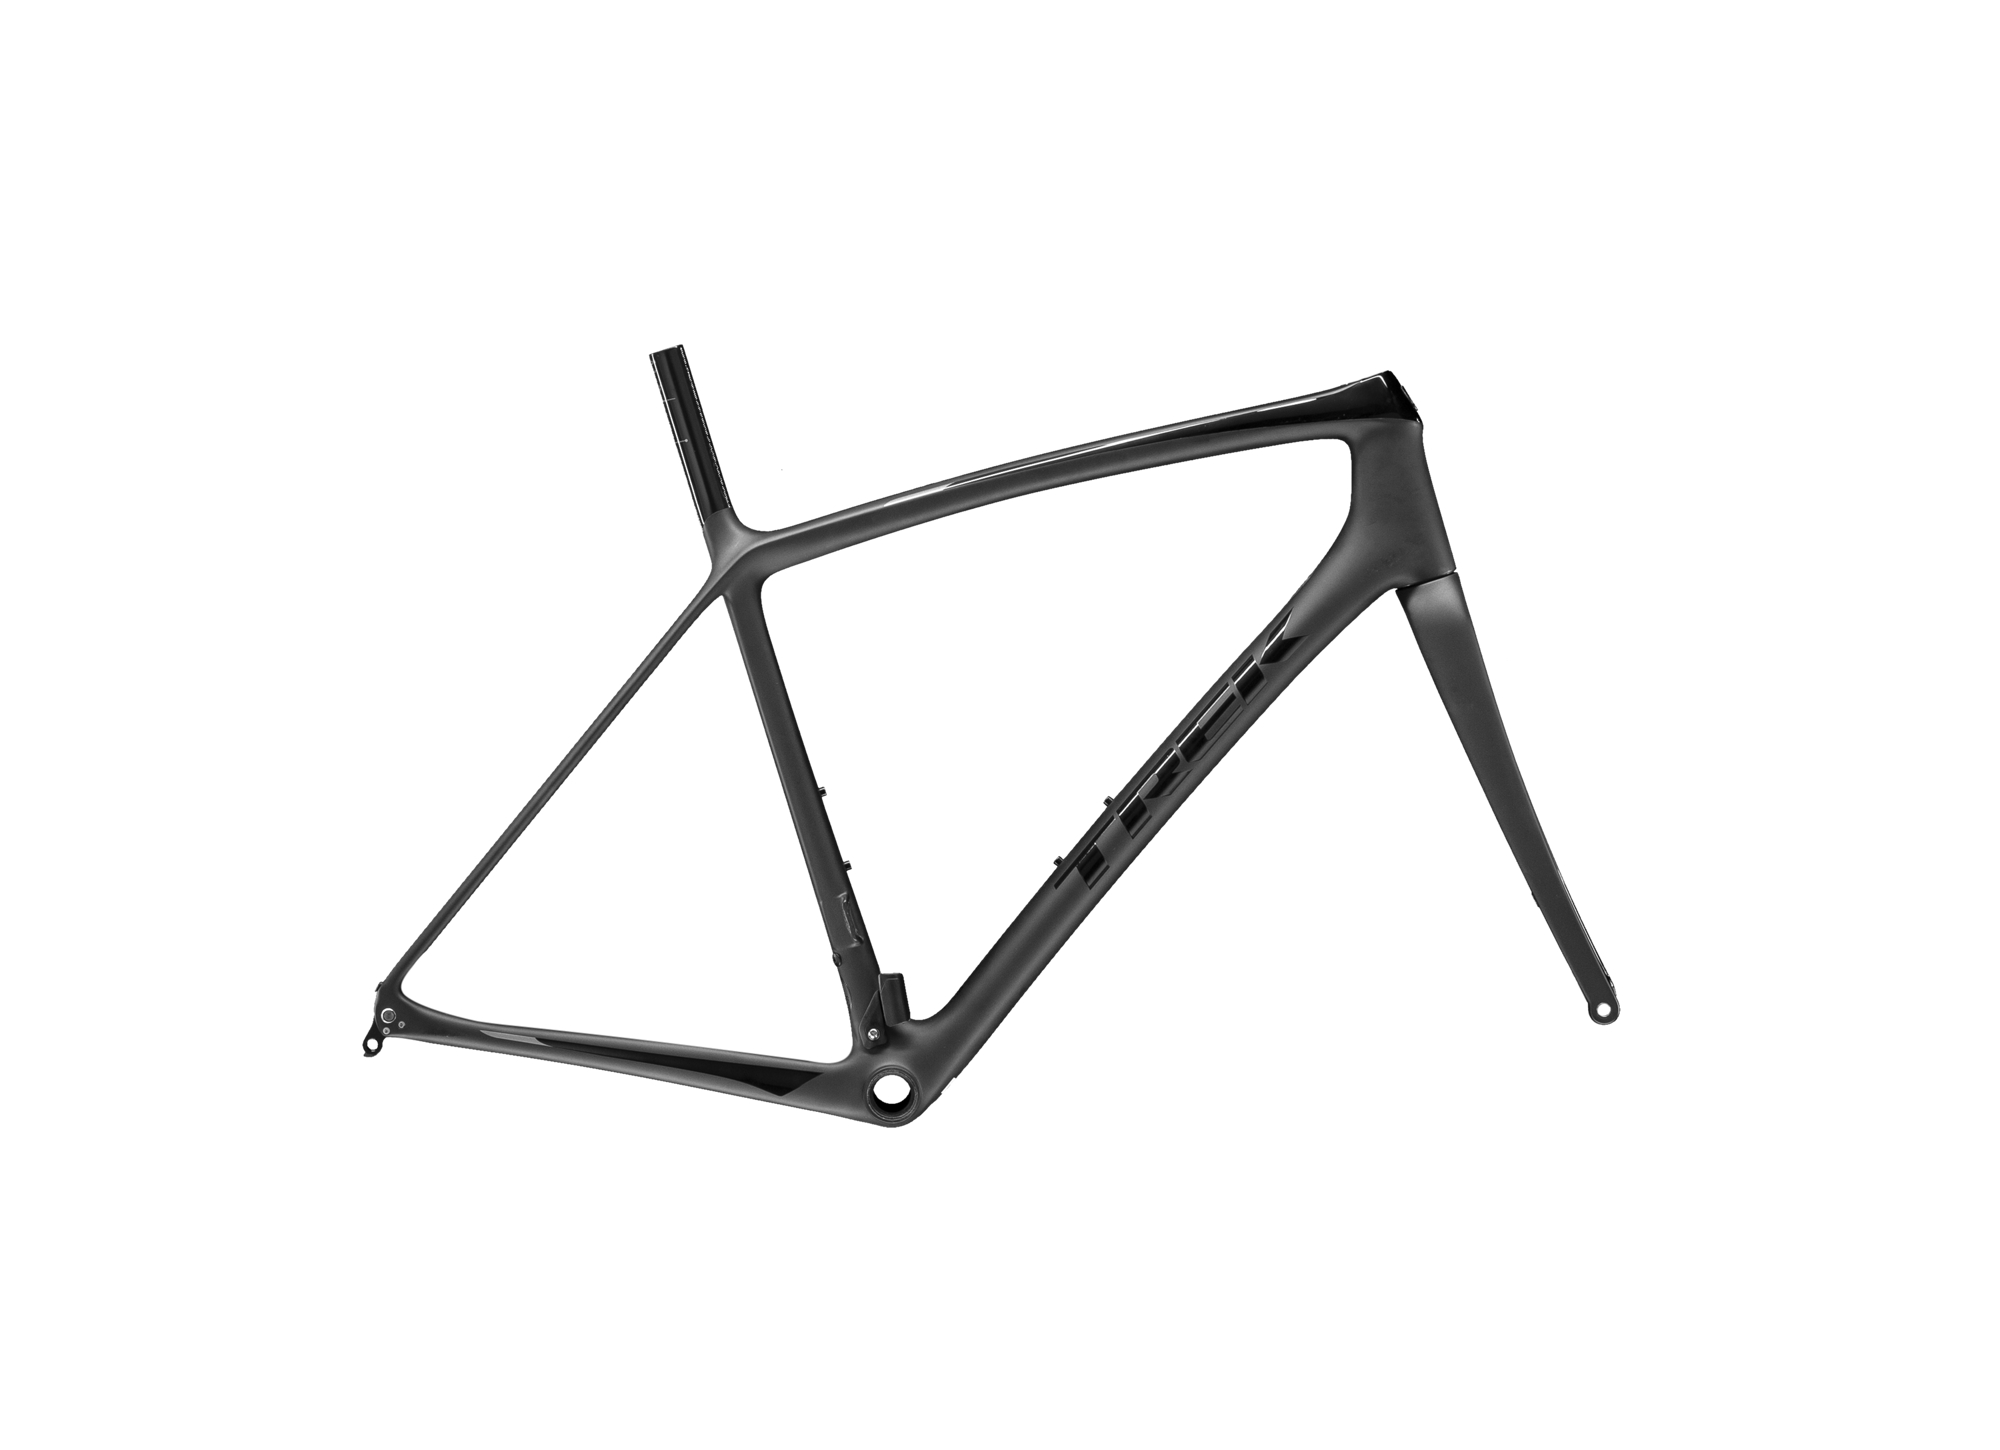 Trek Emonda SLR Disc H2 2020 Carbon Road Bike Frameset in